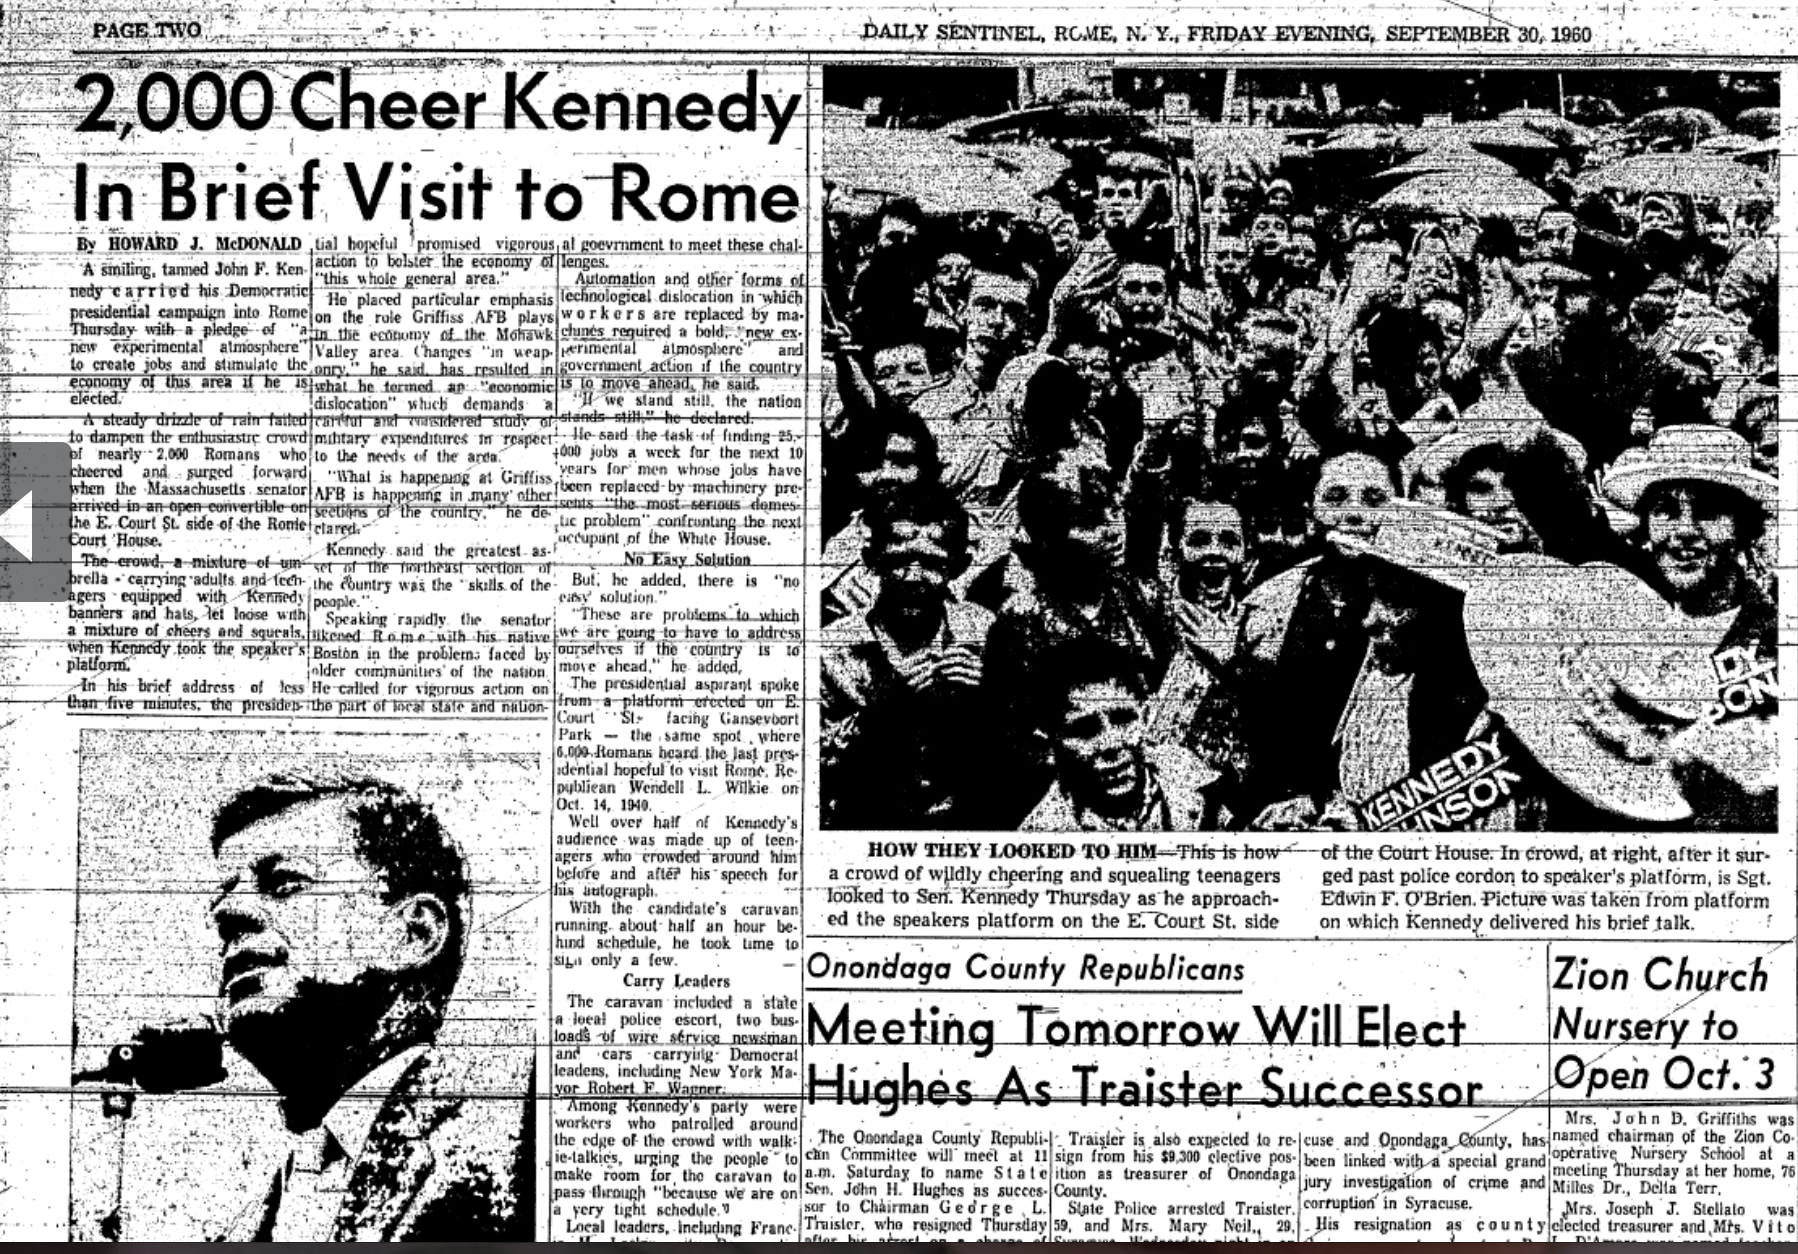 This portion of the 9/30/1960 Sentinel shows the coverage given to the campaign stop, which was attended by 2,000 people.